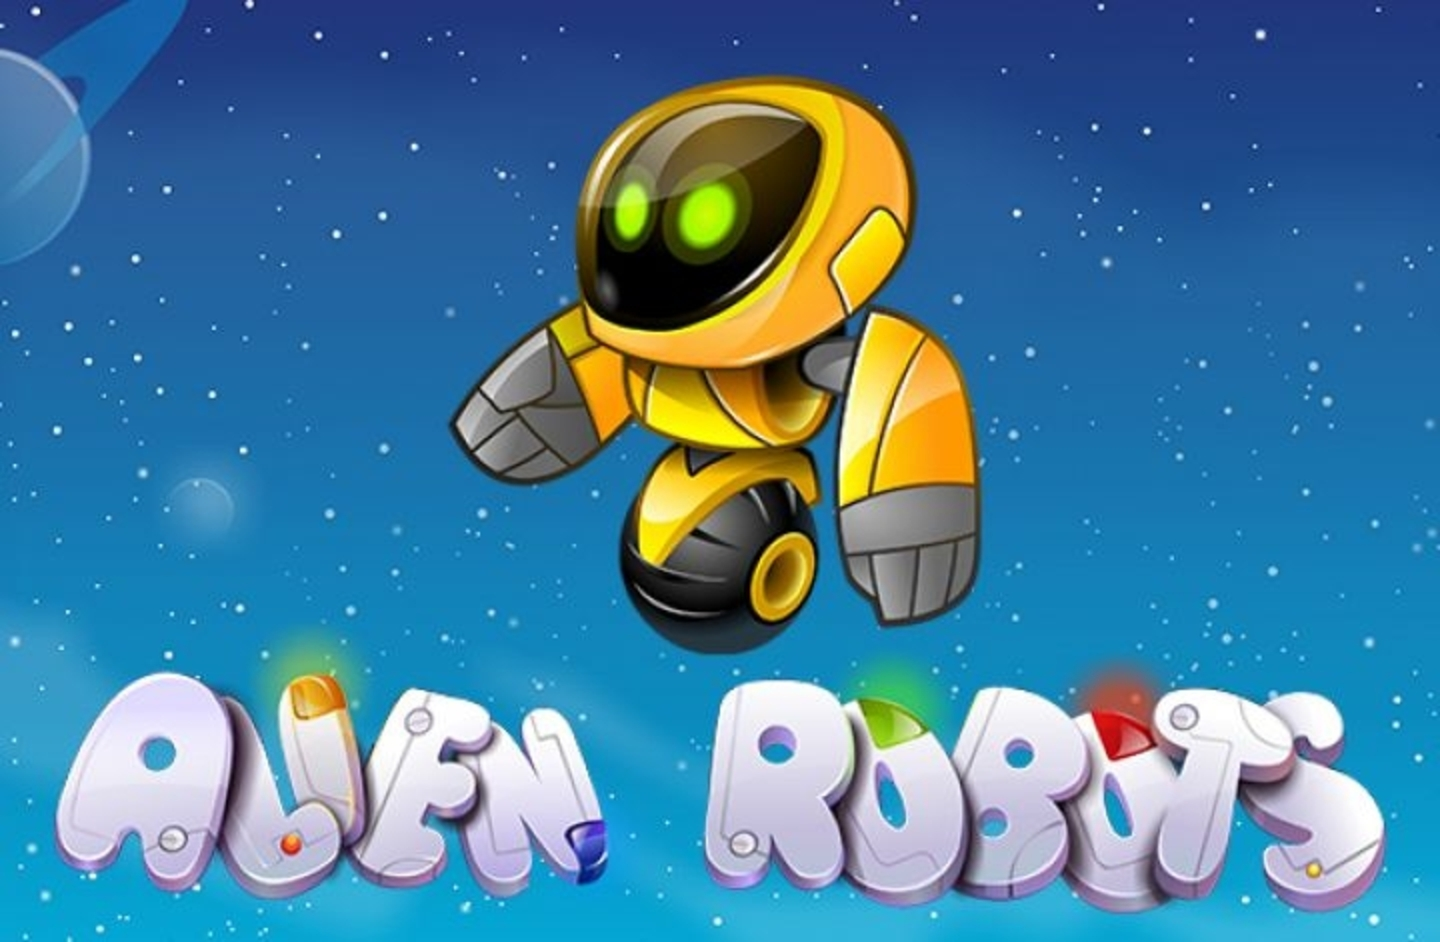 The Alien Robots Online Slot Demo Game by NetEnt